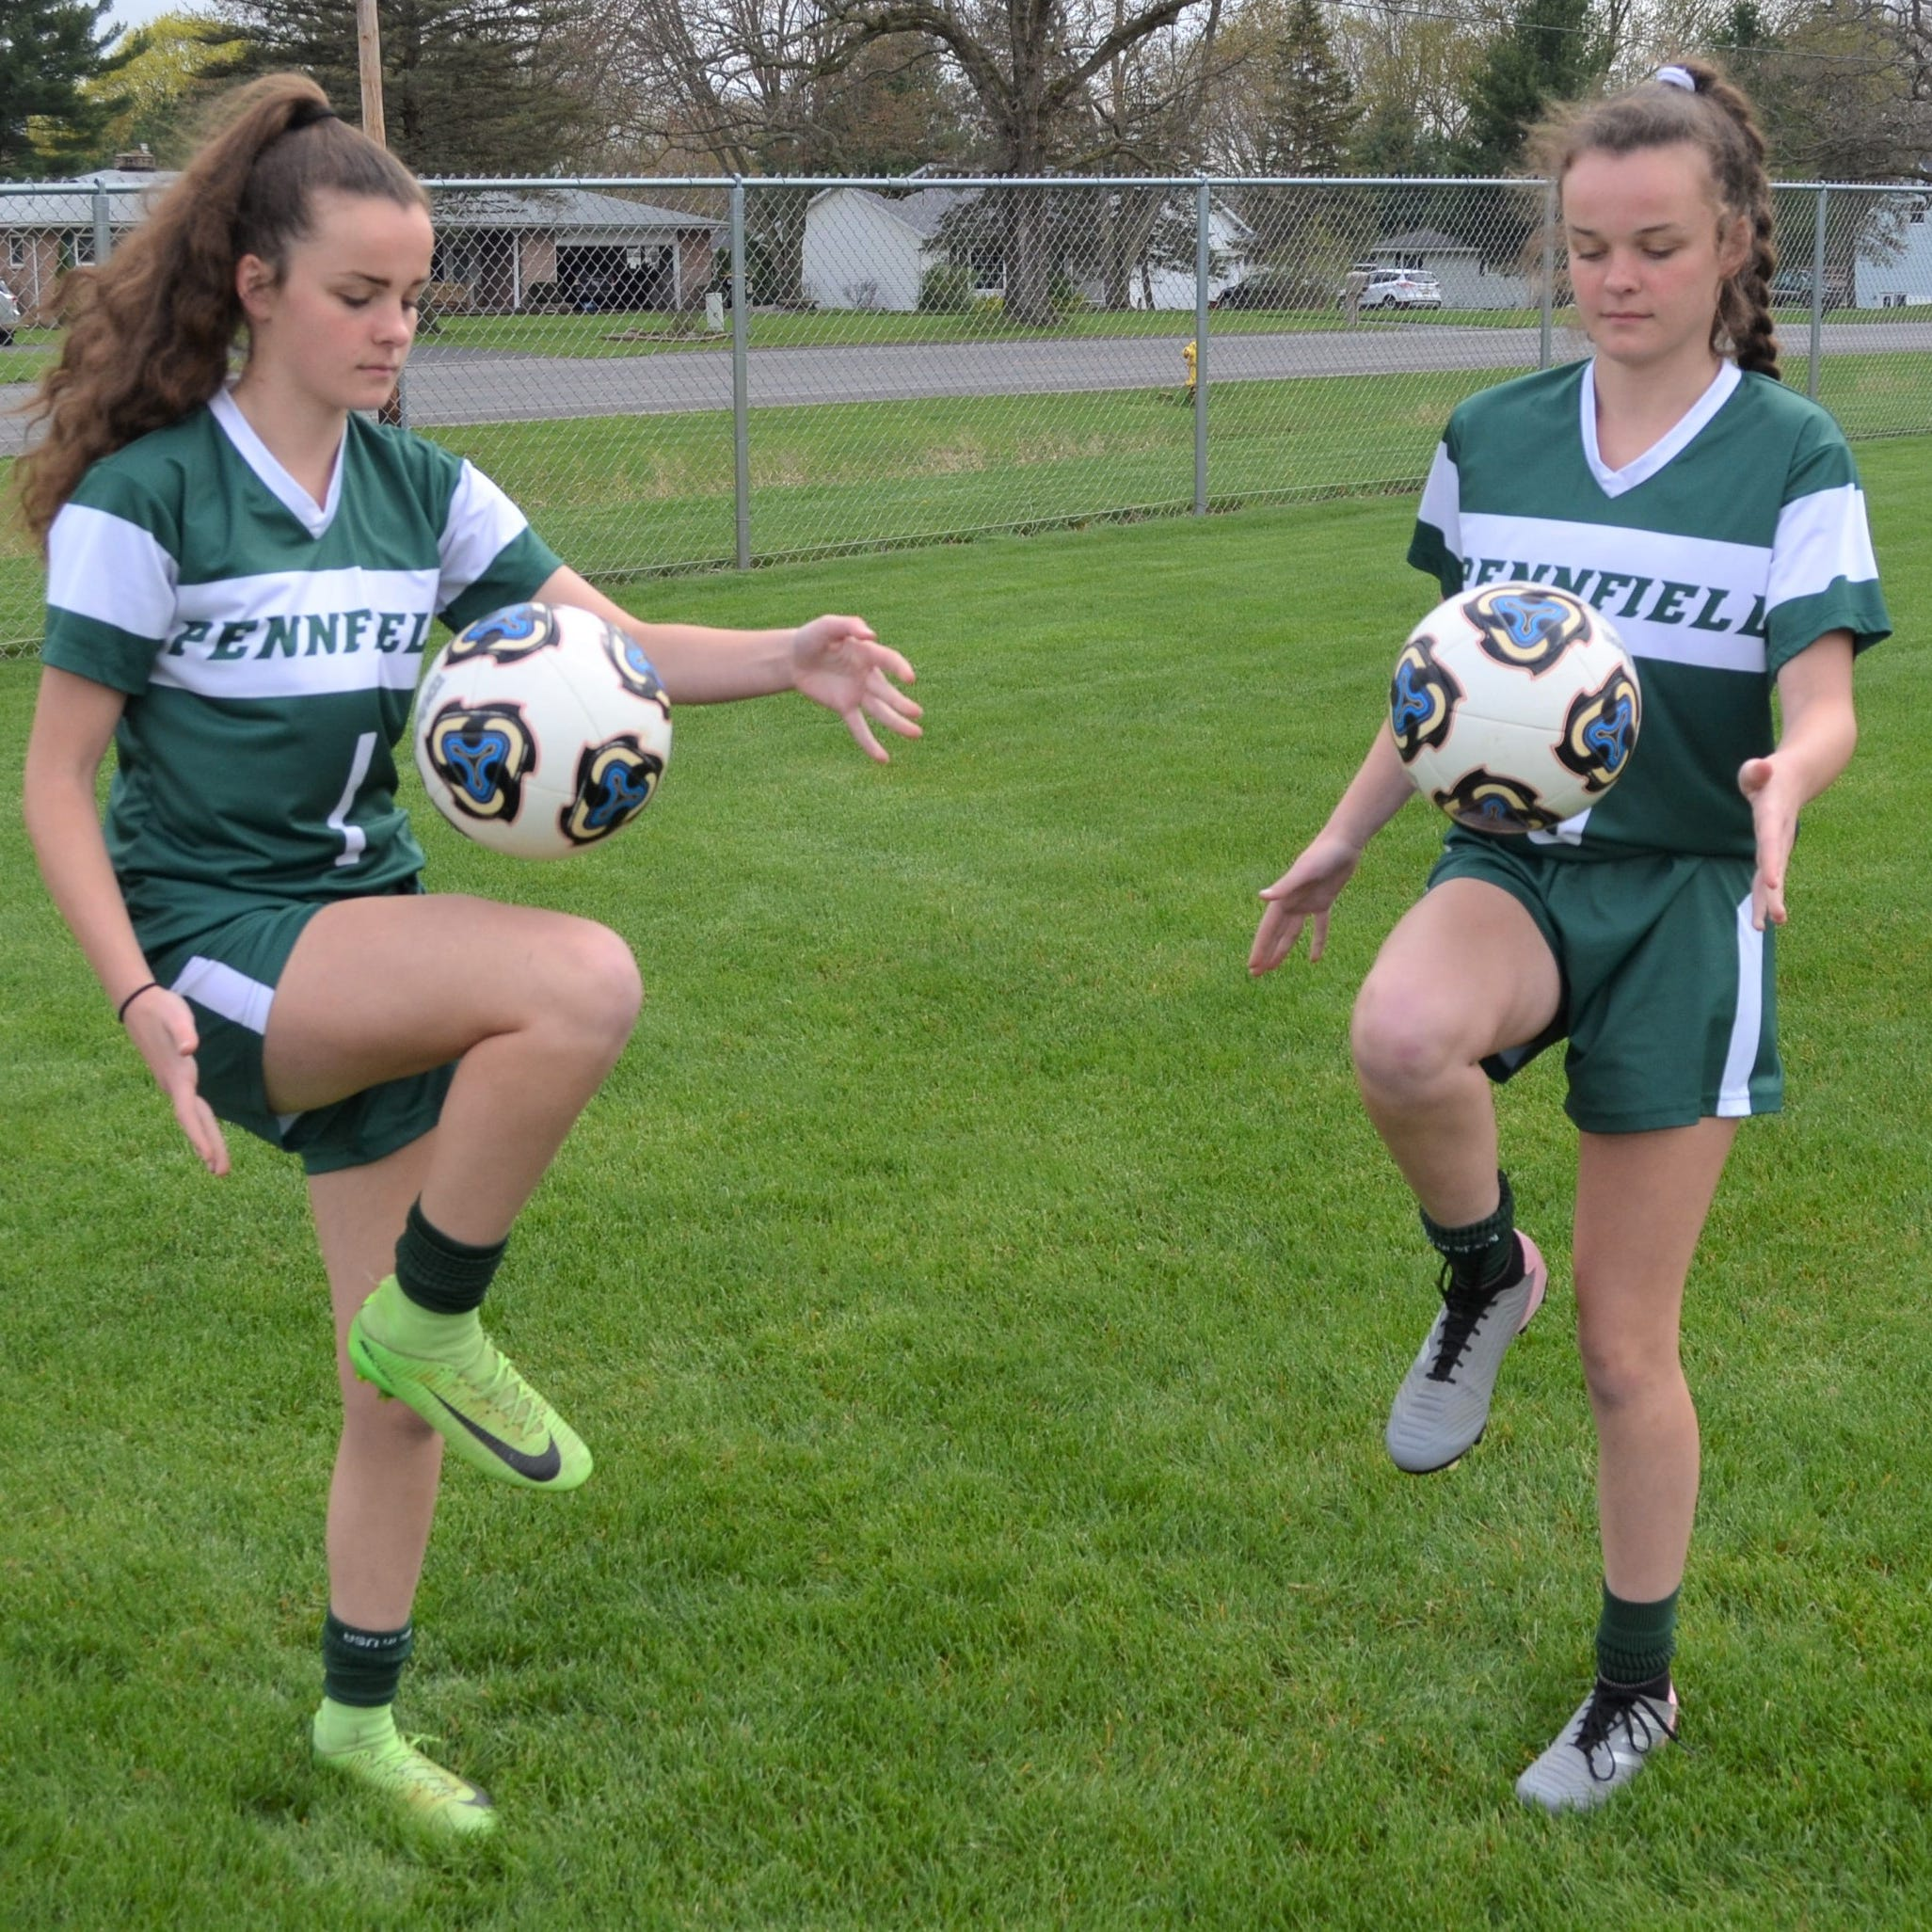 The 'twin thing' is helping Pennfield find the right answer on the soccer field